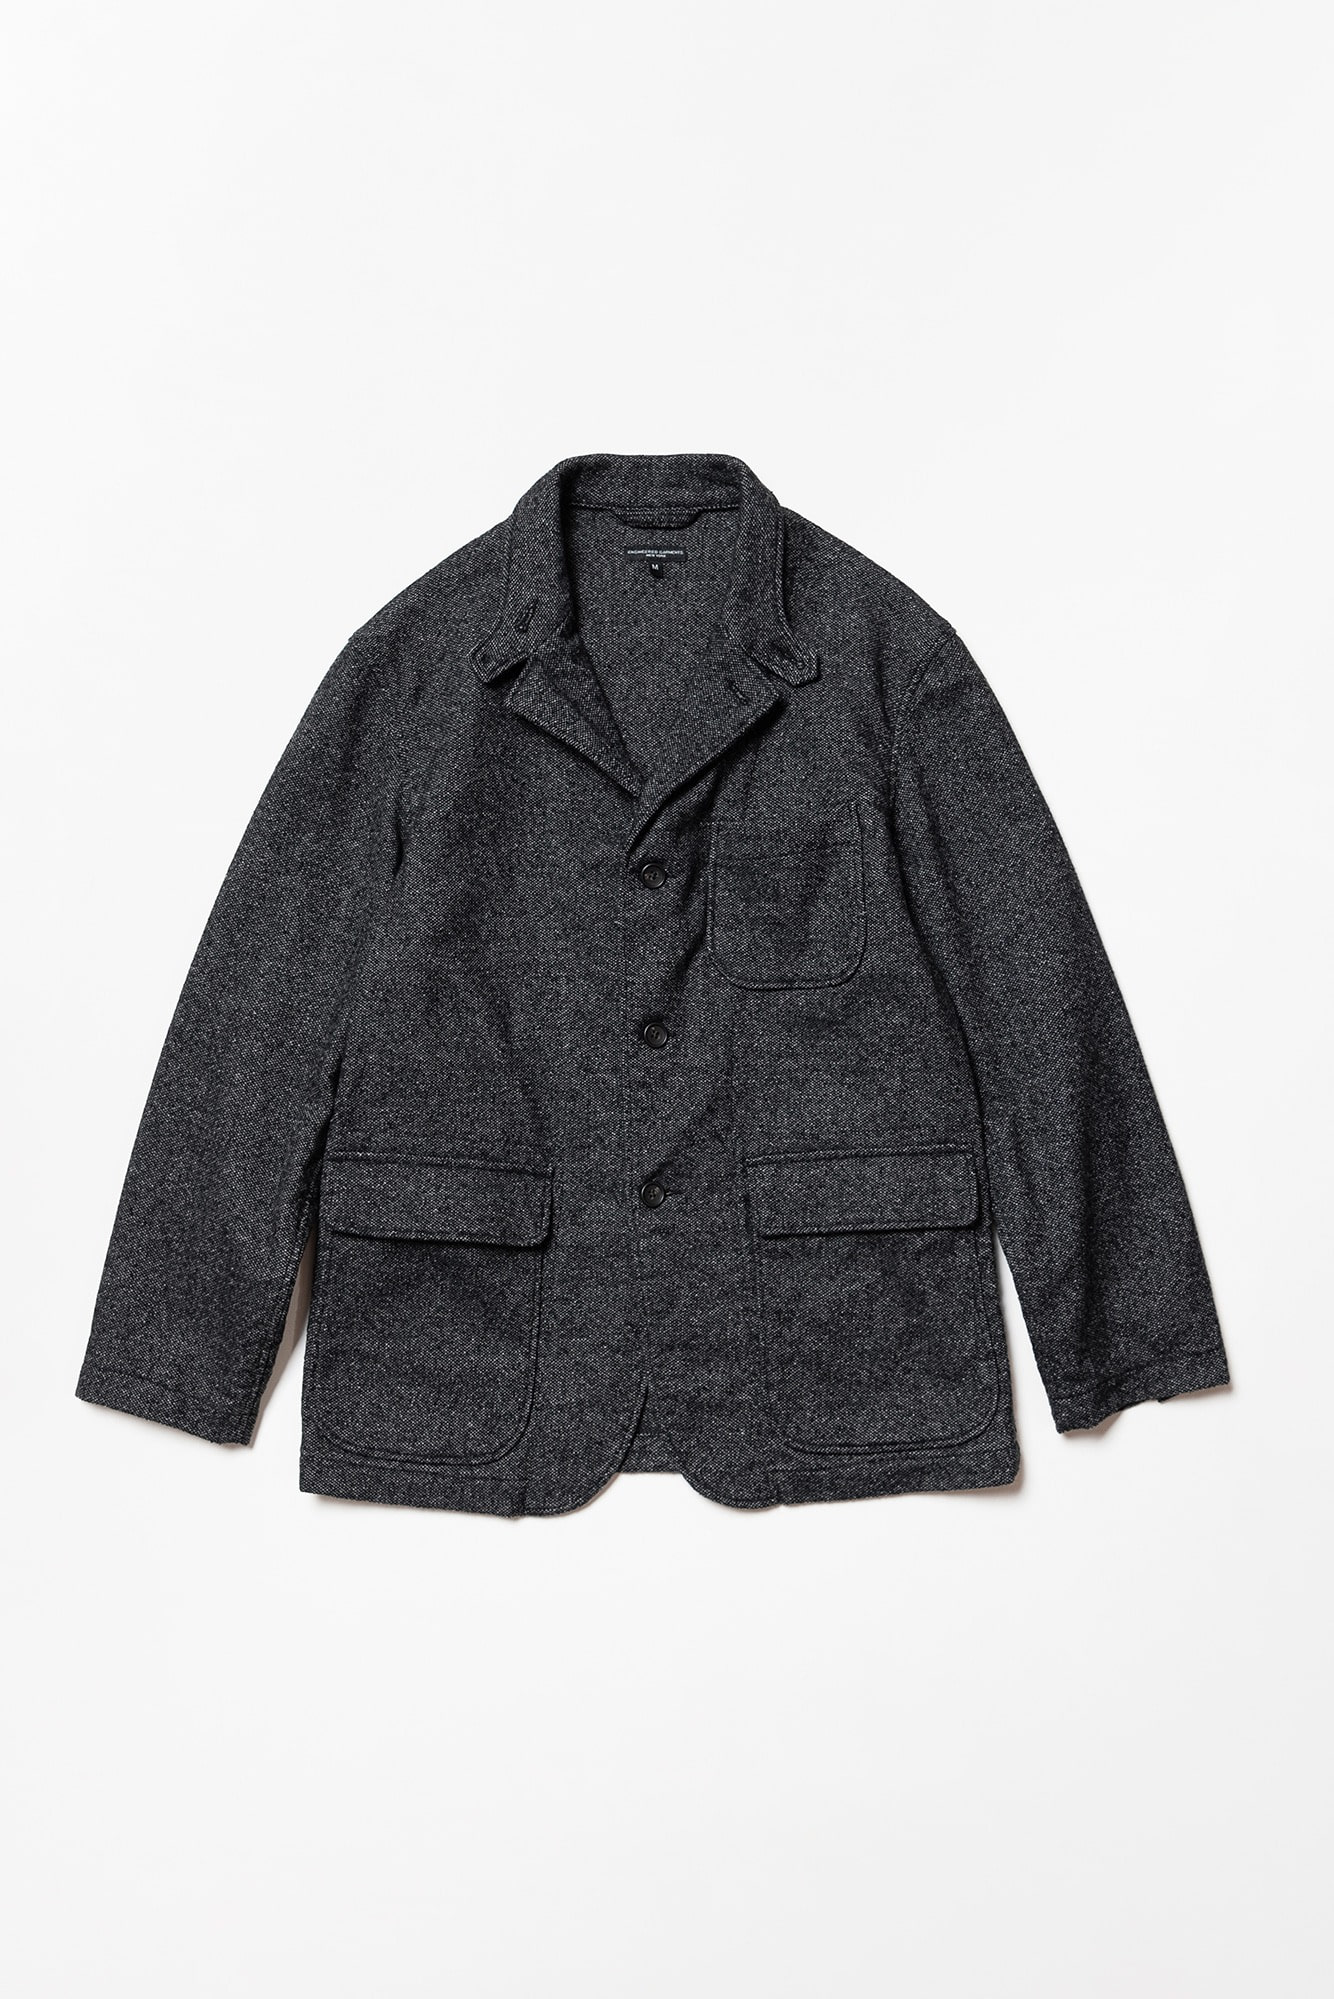 "ENGINEERED GARMENTS Loiter Jacket ""Grey Wool Blend Homespun"""